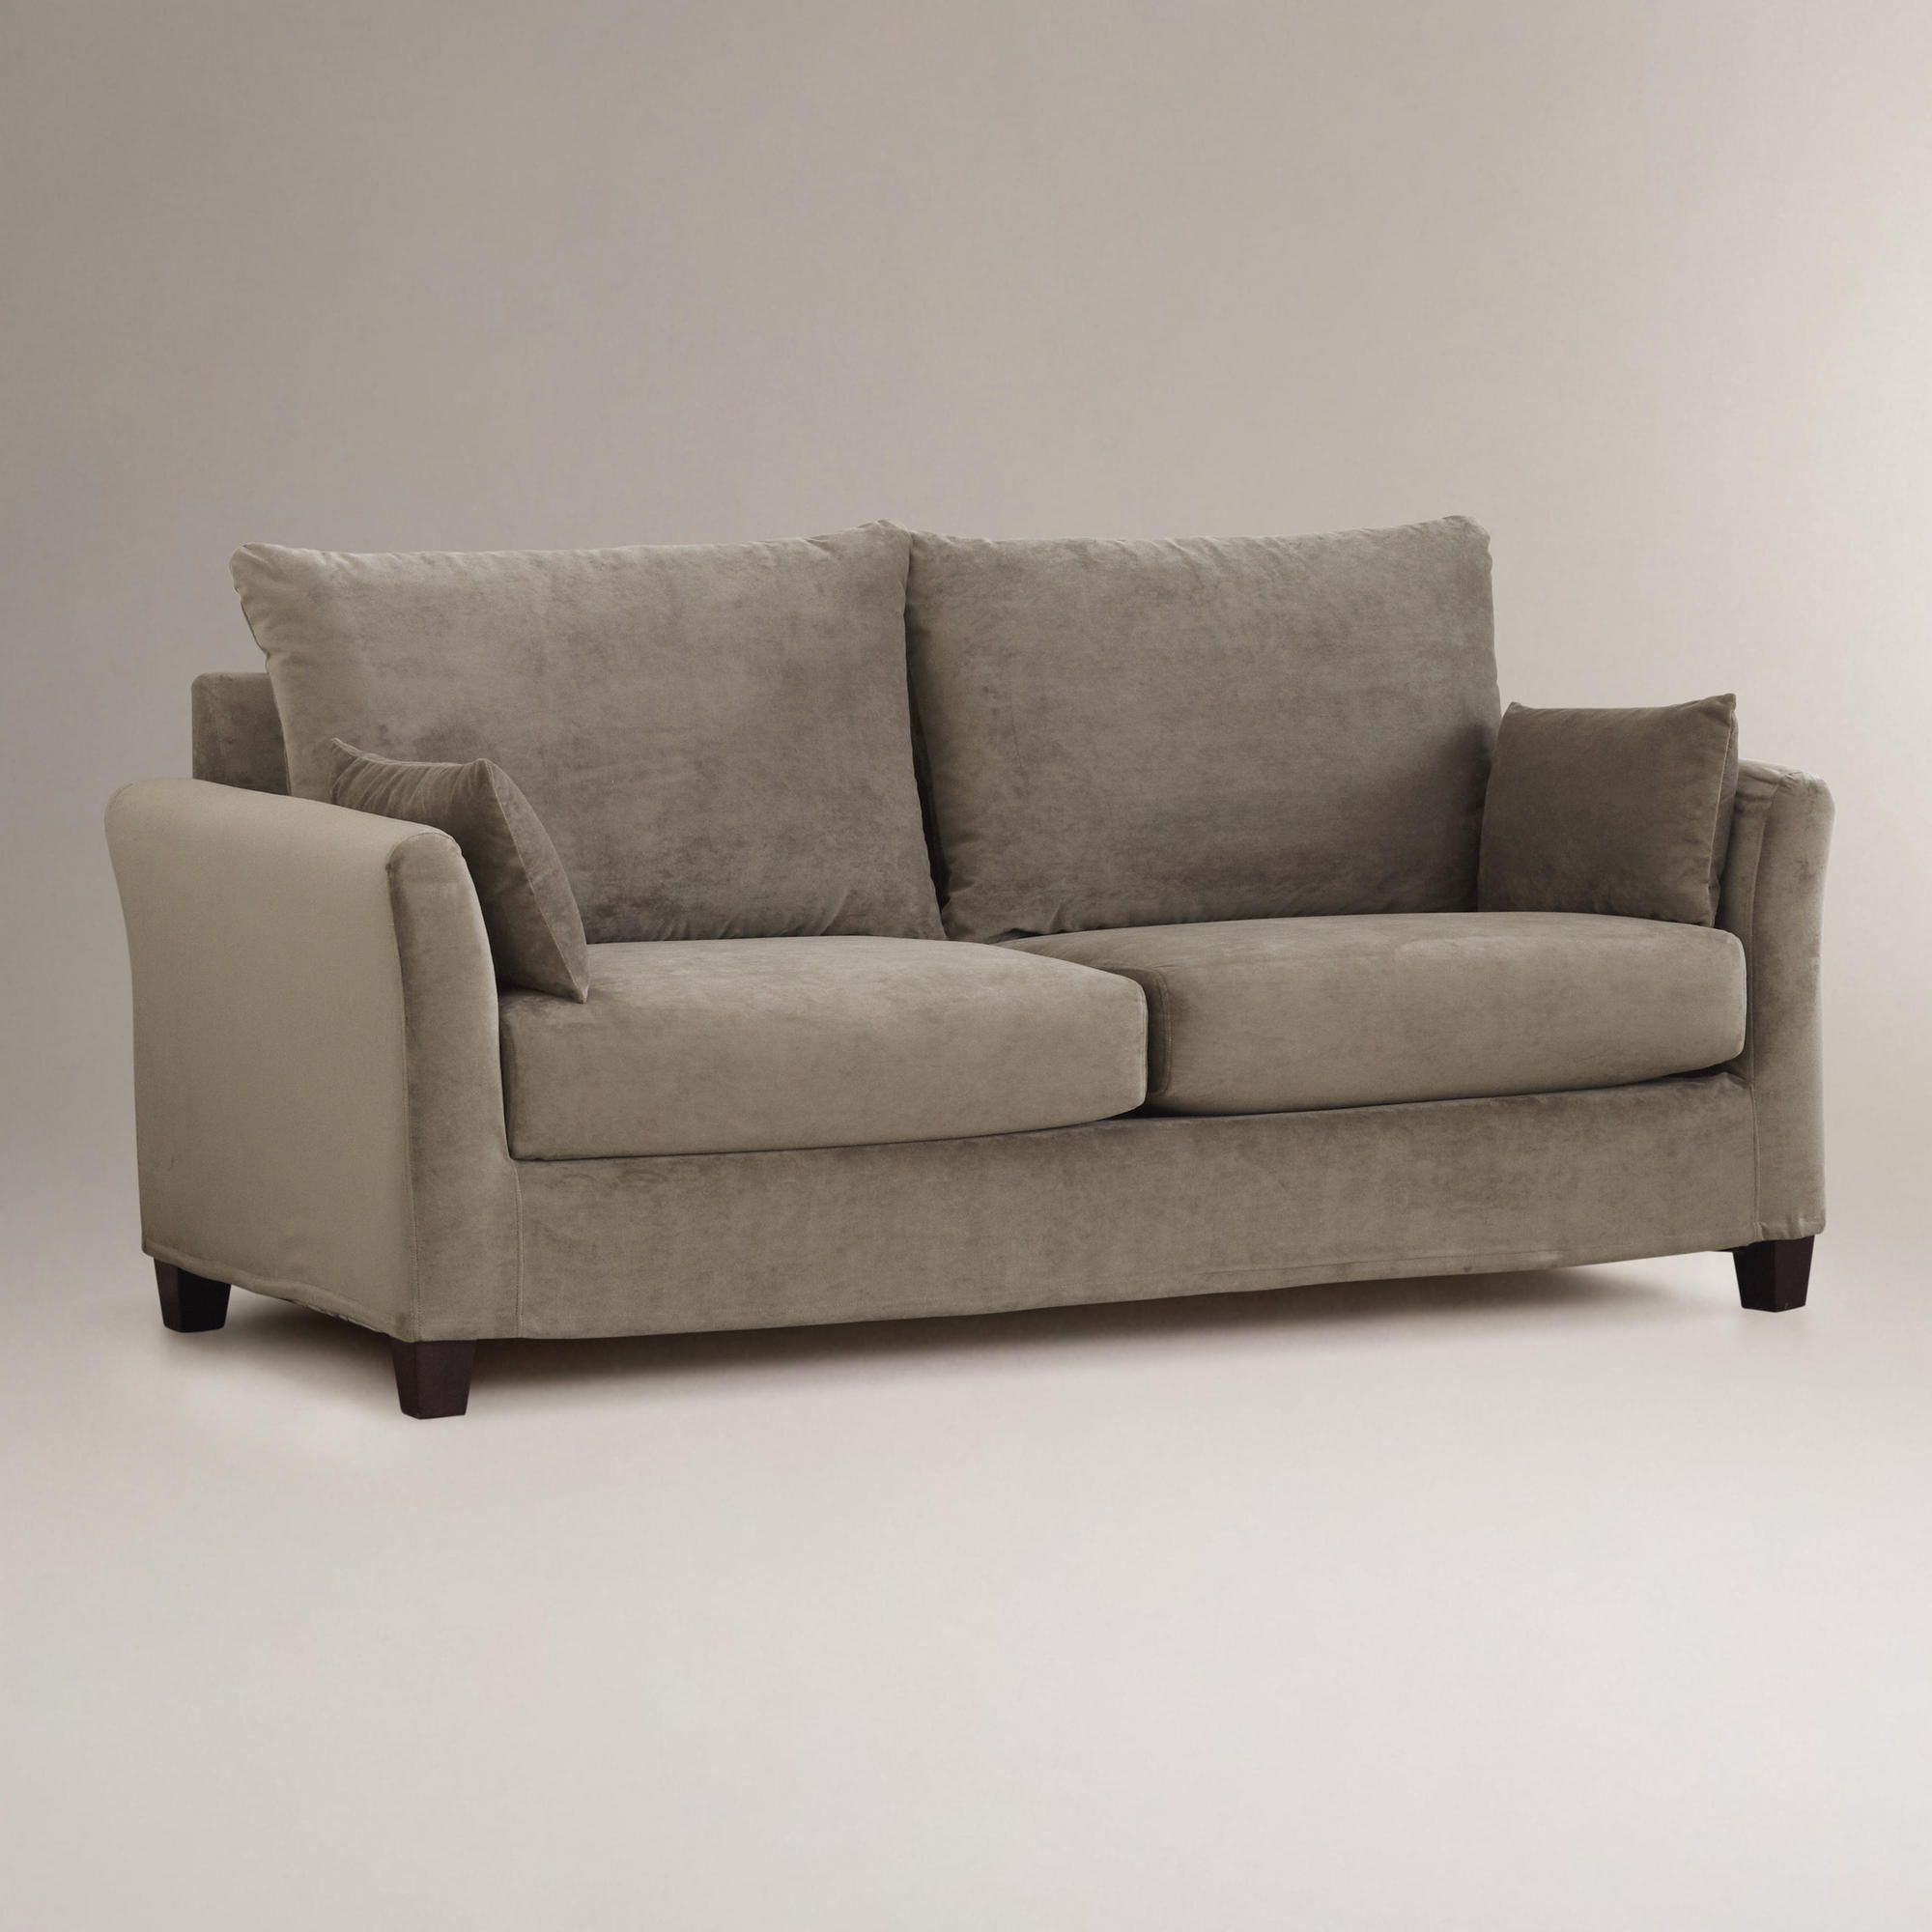 Astounding Soft Grey Mink Velvet Luxe Sofa Slipcover World Market Gmtry Best Dining Table And Chair Ideas Images Gmtryco